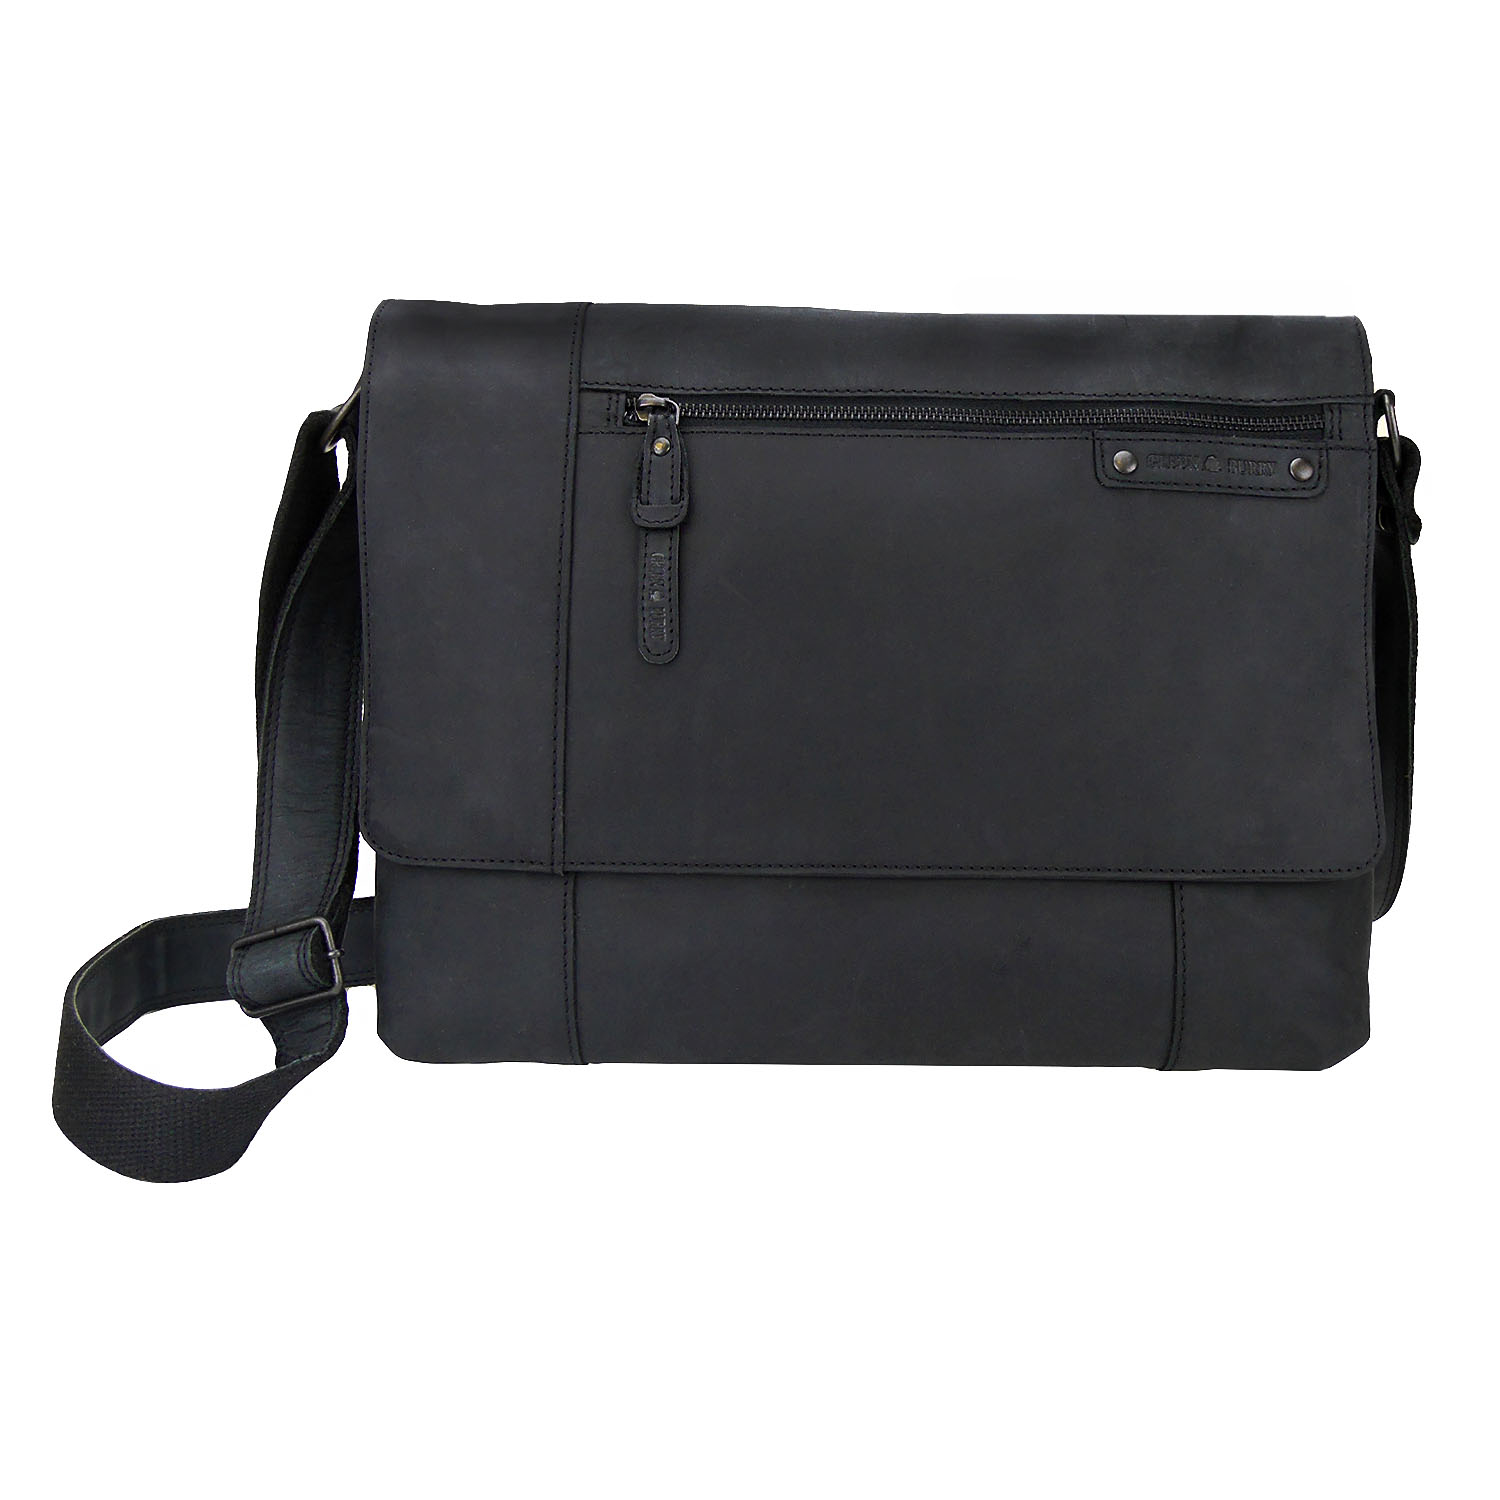 Greenburry Vintage Revival 1943-20 Leder Messenger Black